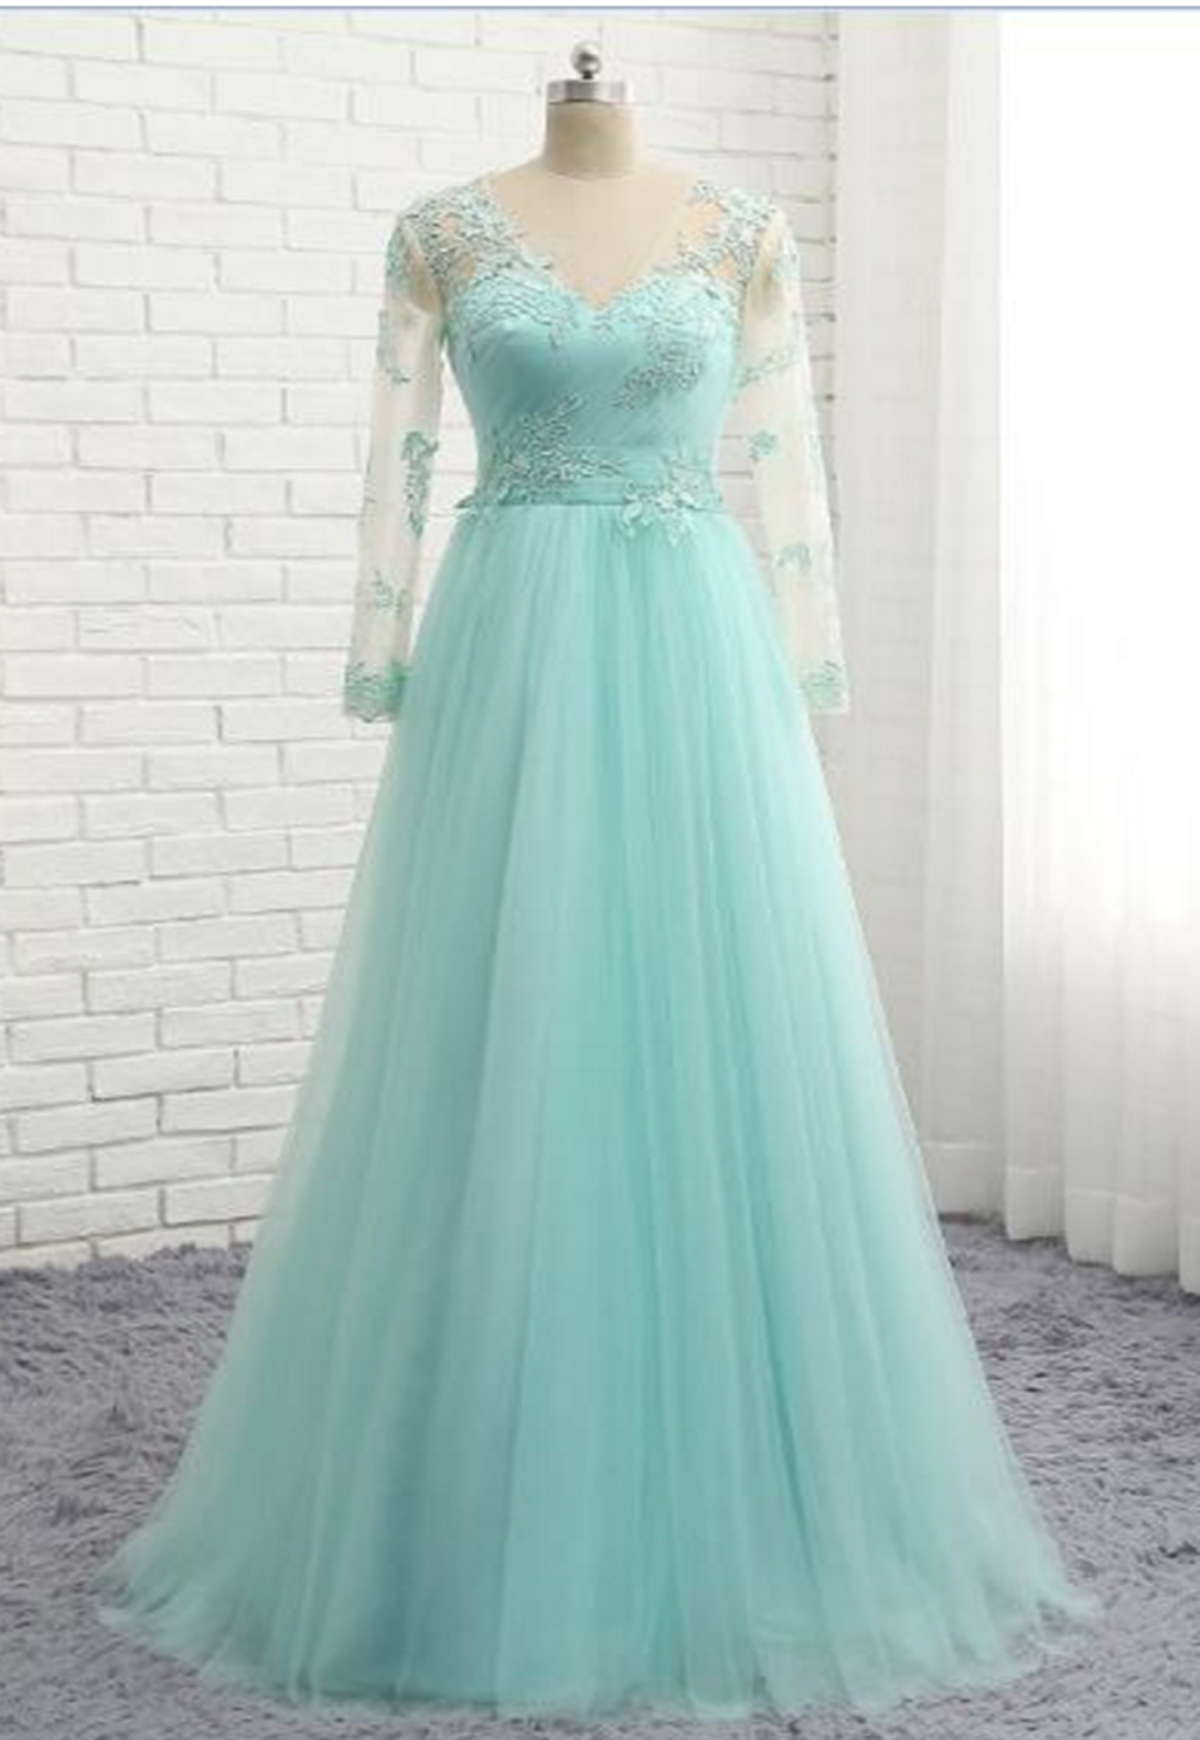 Mint tulle simple V neck plus size formal prom dress with long sleeves from  Girlsprom